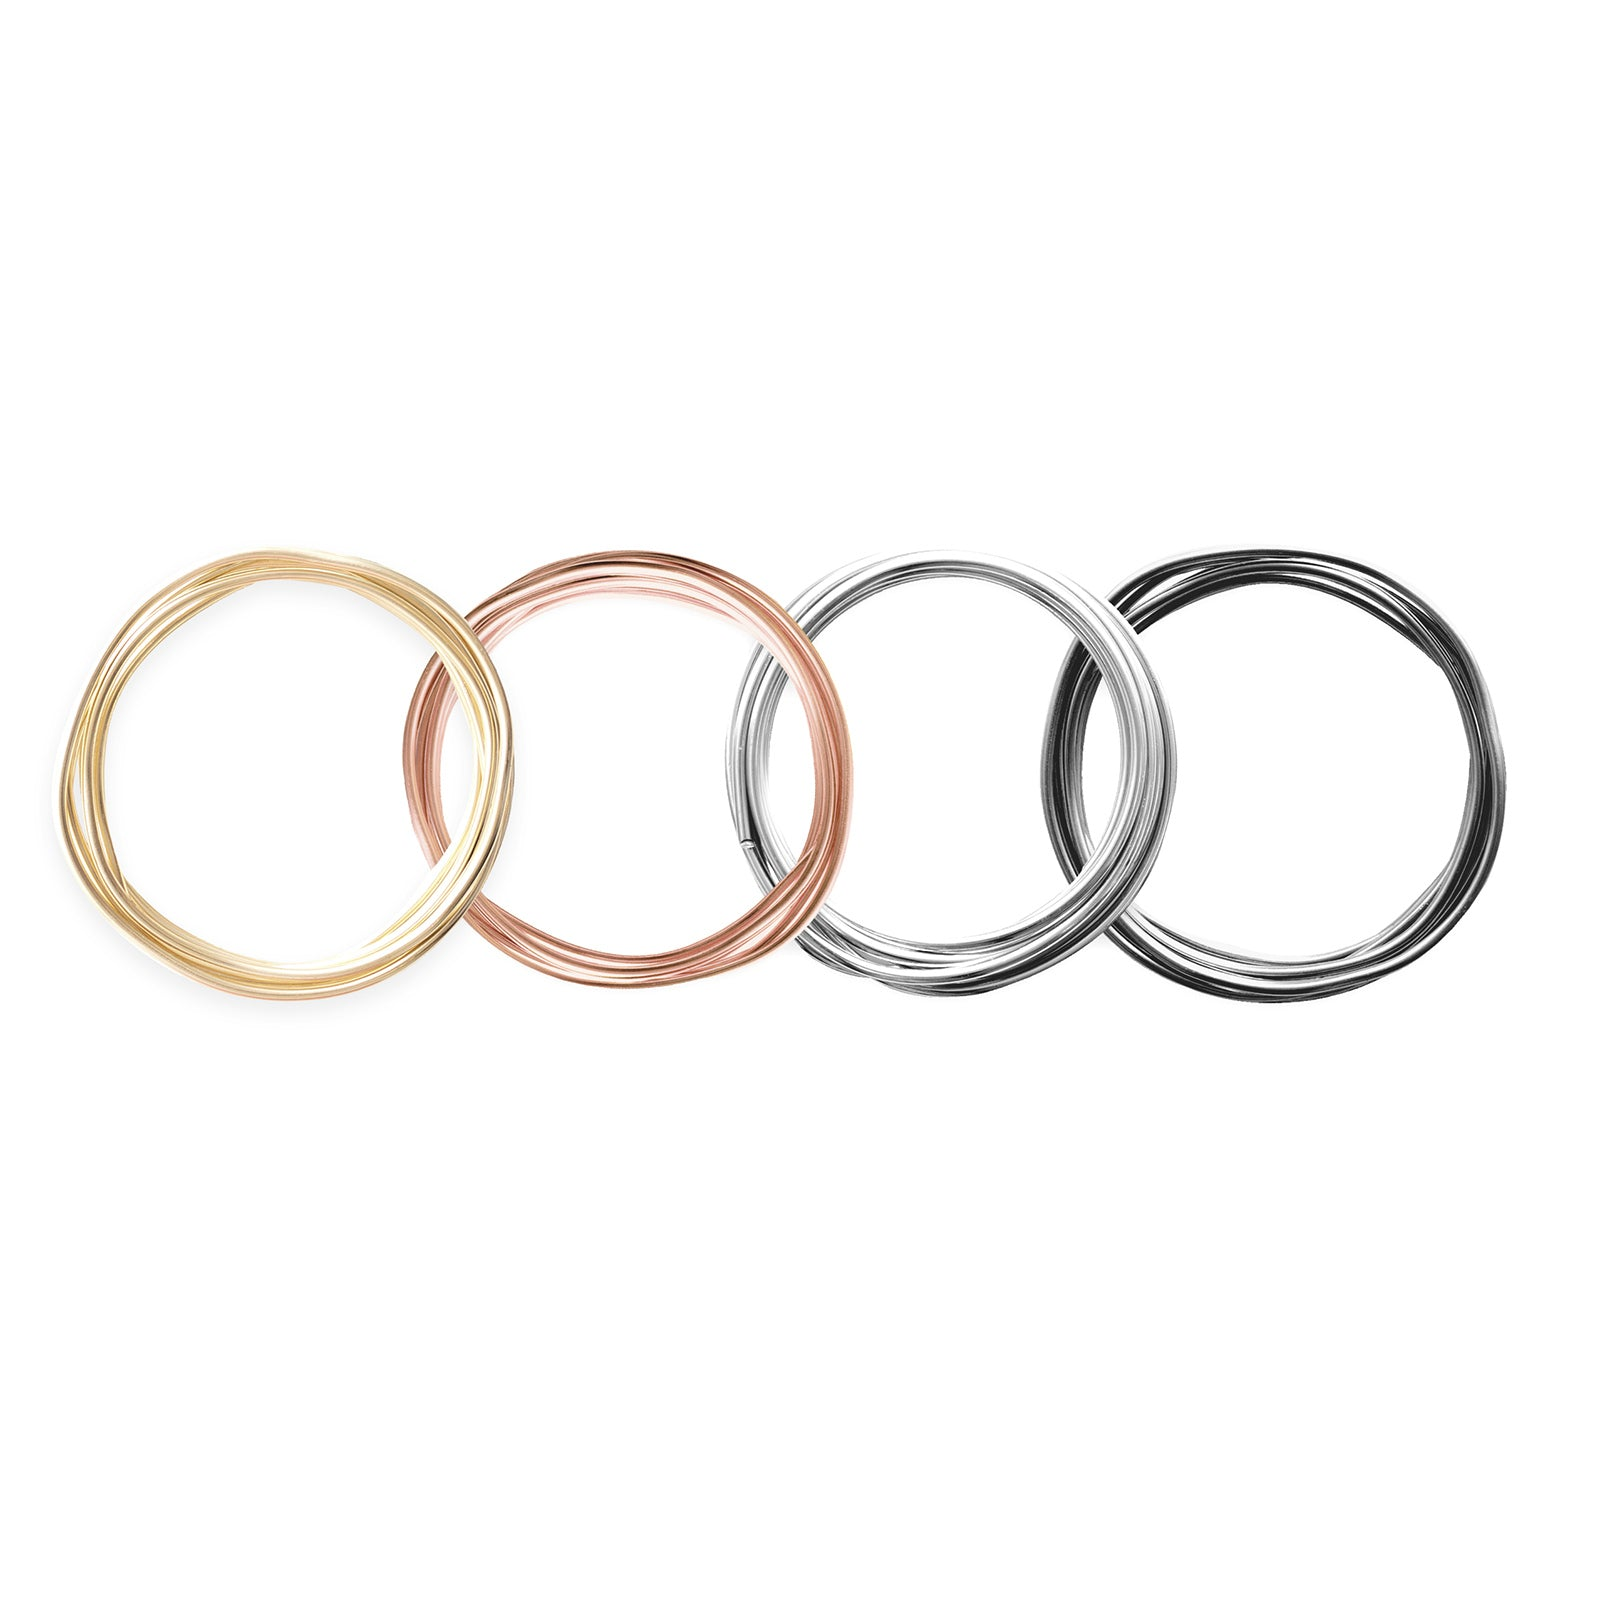 WR Wire 2.5Mm Neutral 4Pk